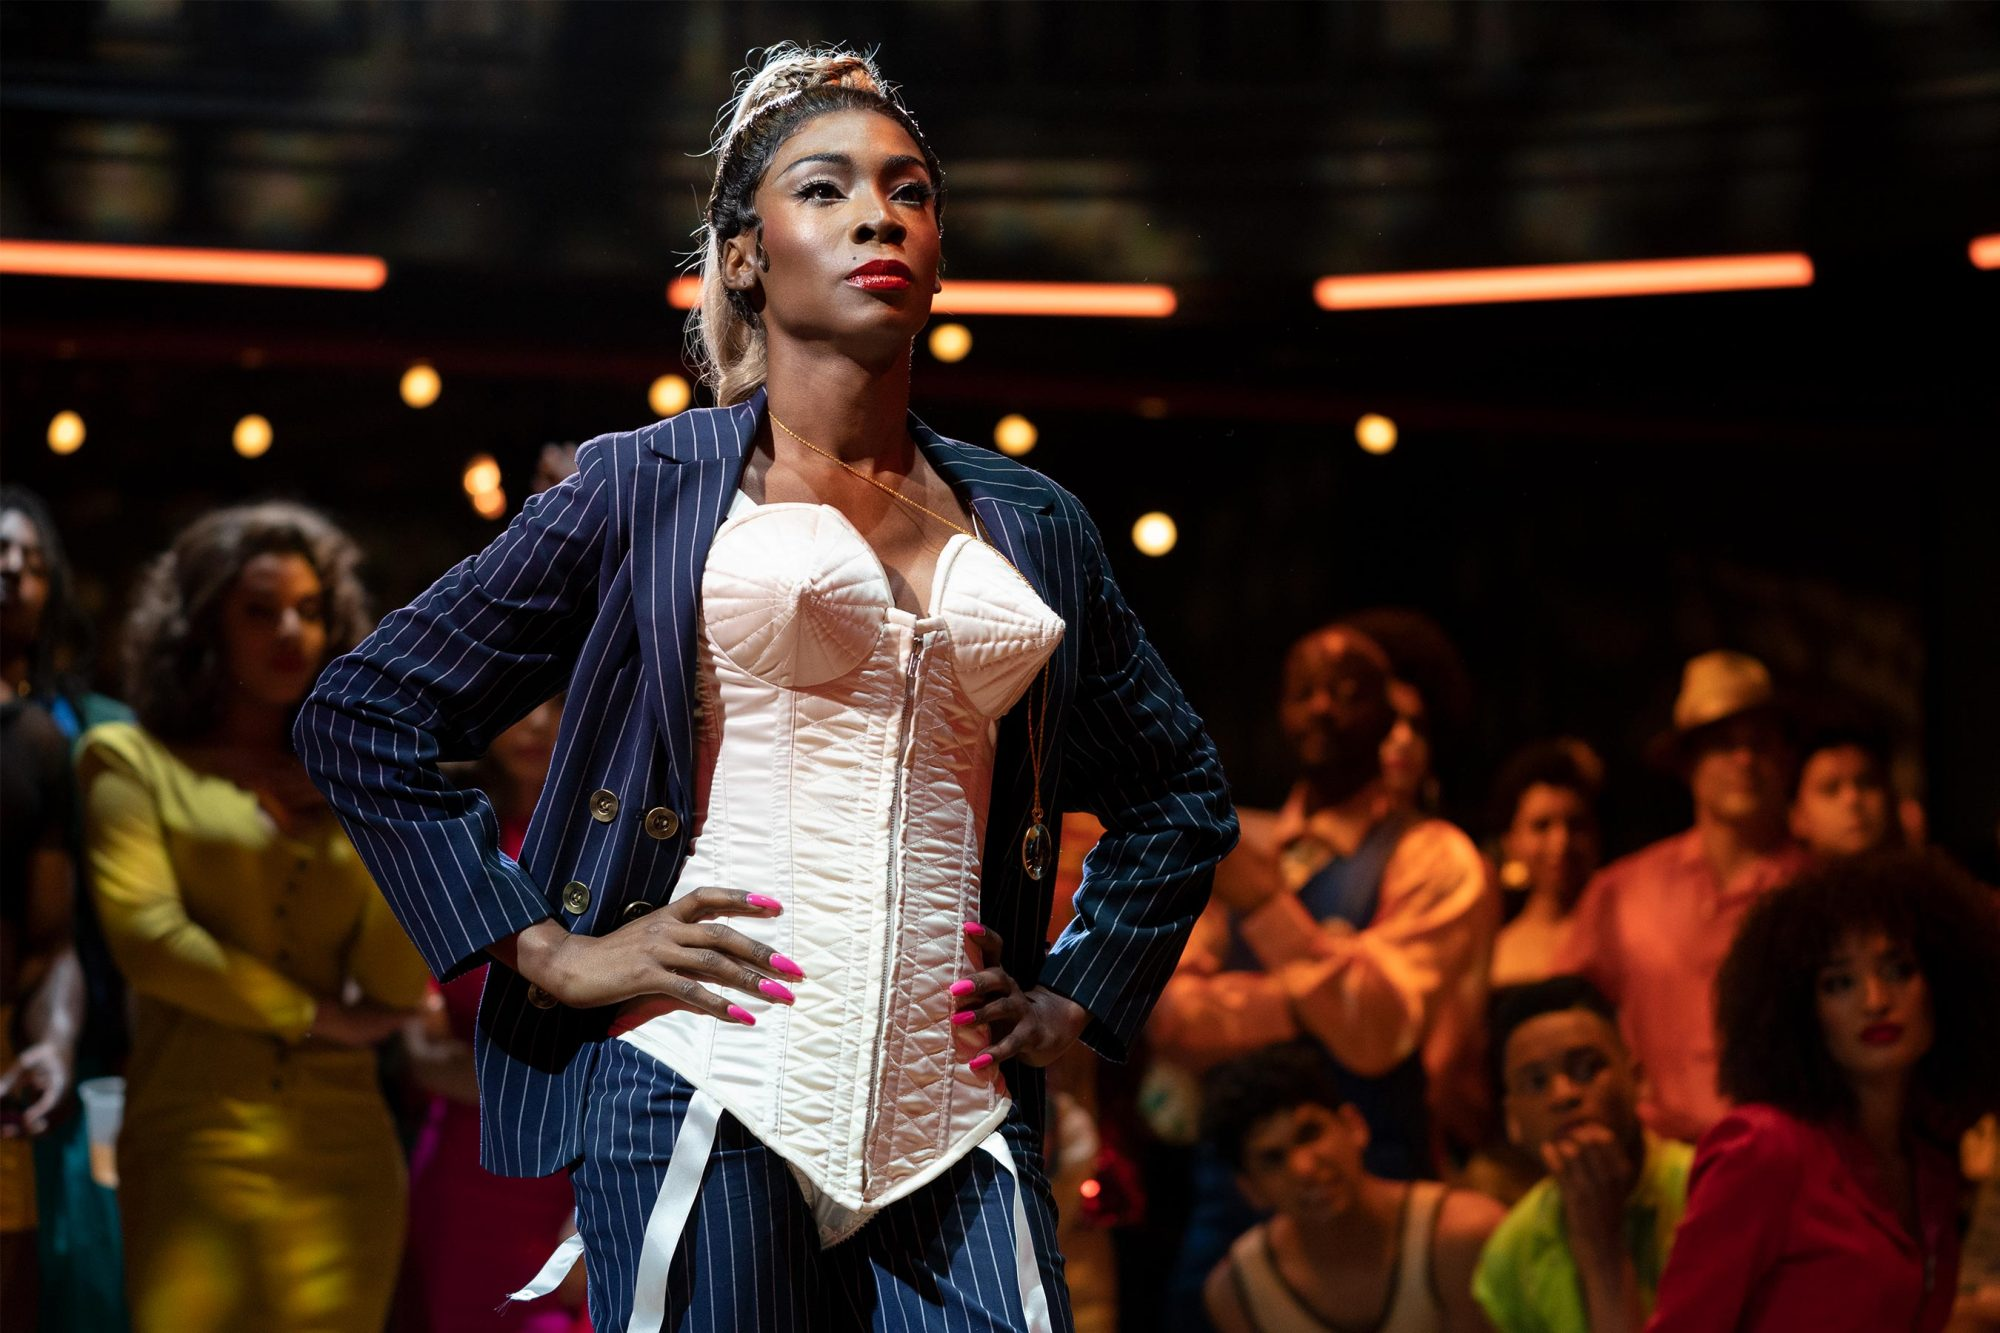 "POSE -- ""Never Knew Love Like This Before"" -- Season 2, Episode 4 (Airs Tues, July 9, 10:00 p.m. e/p) Pictured: Angelica Ross as Candy. CR: Macall Polay/FX"